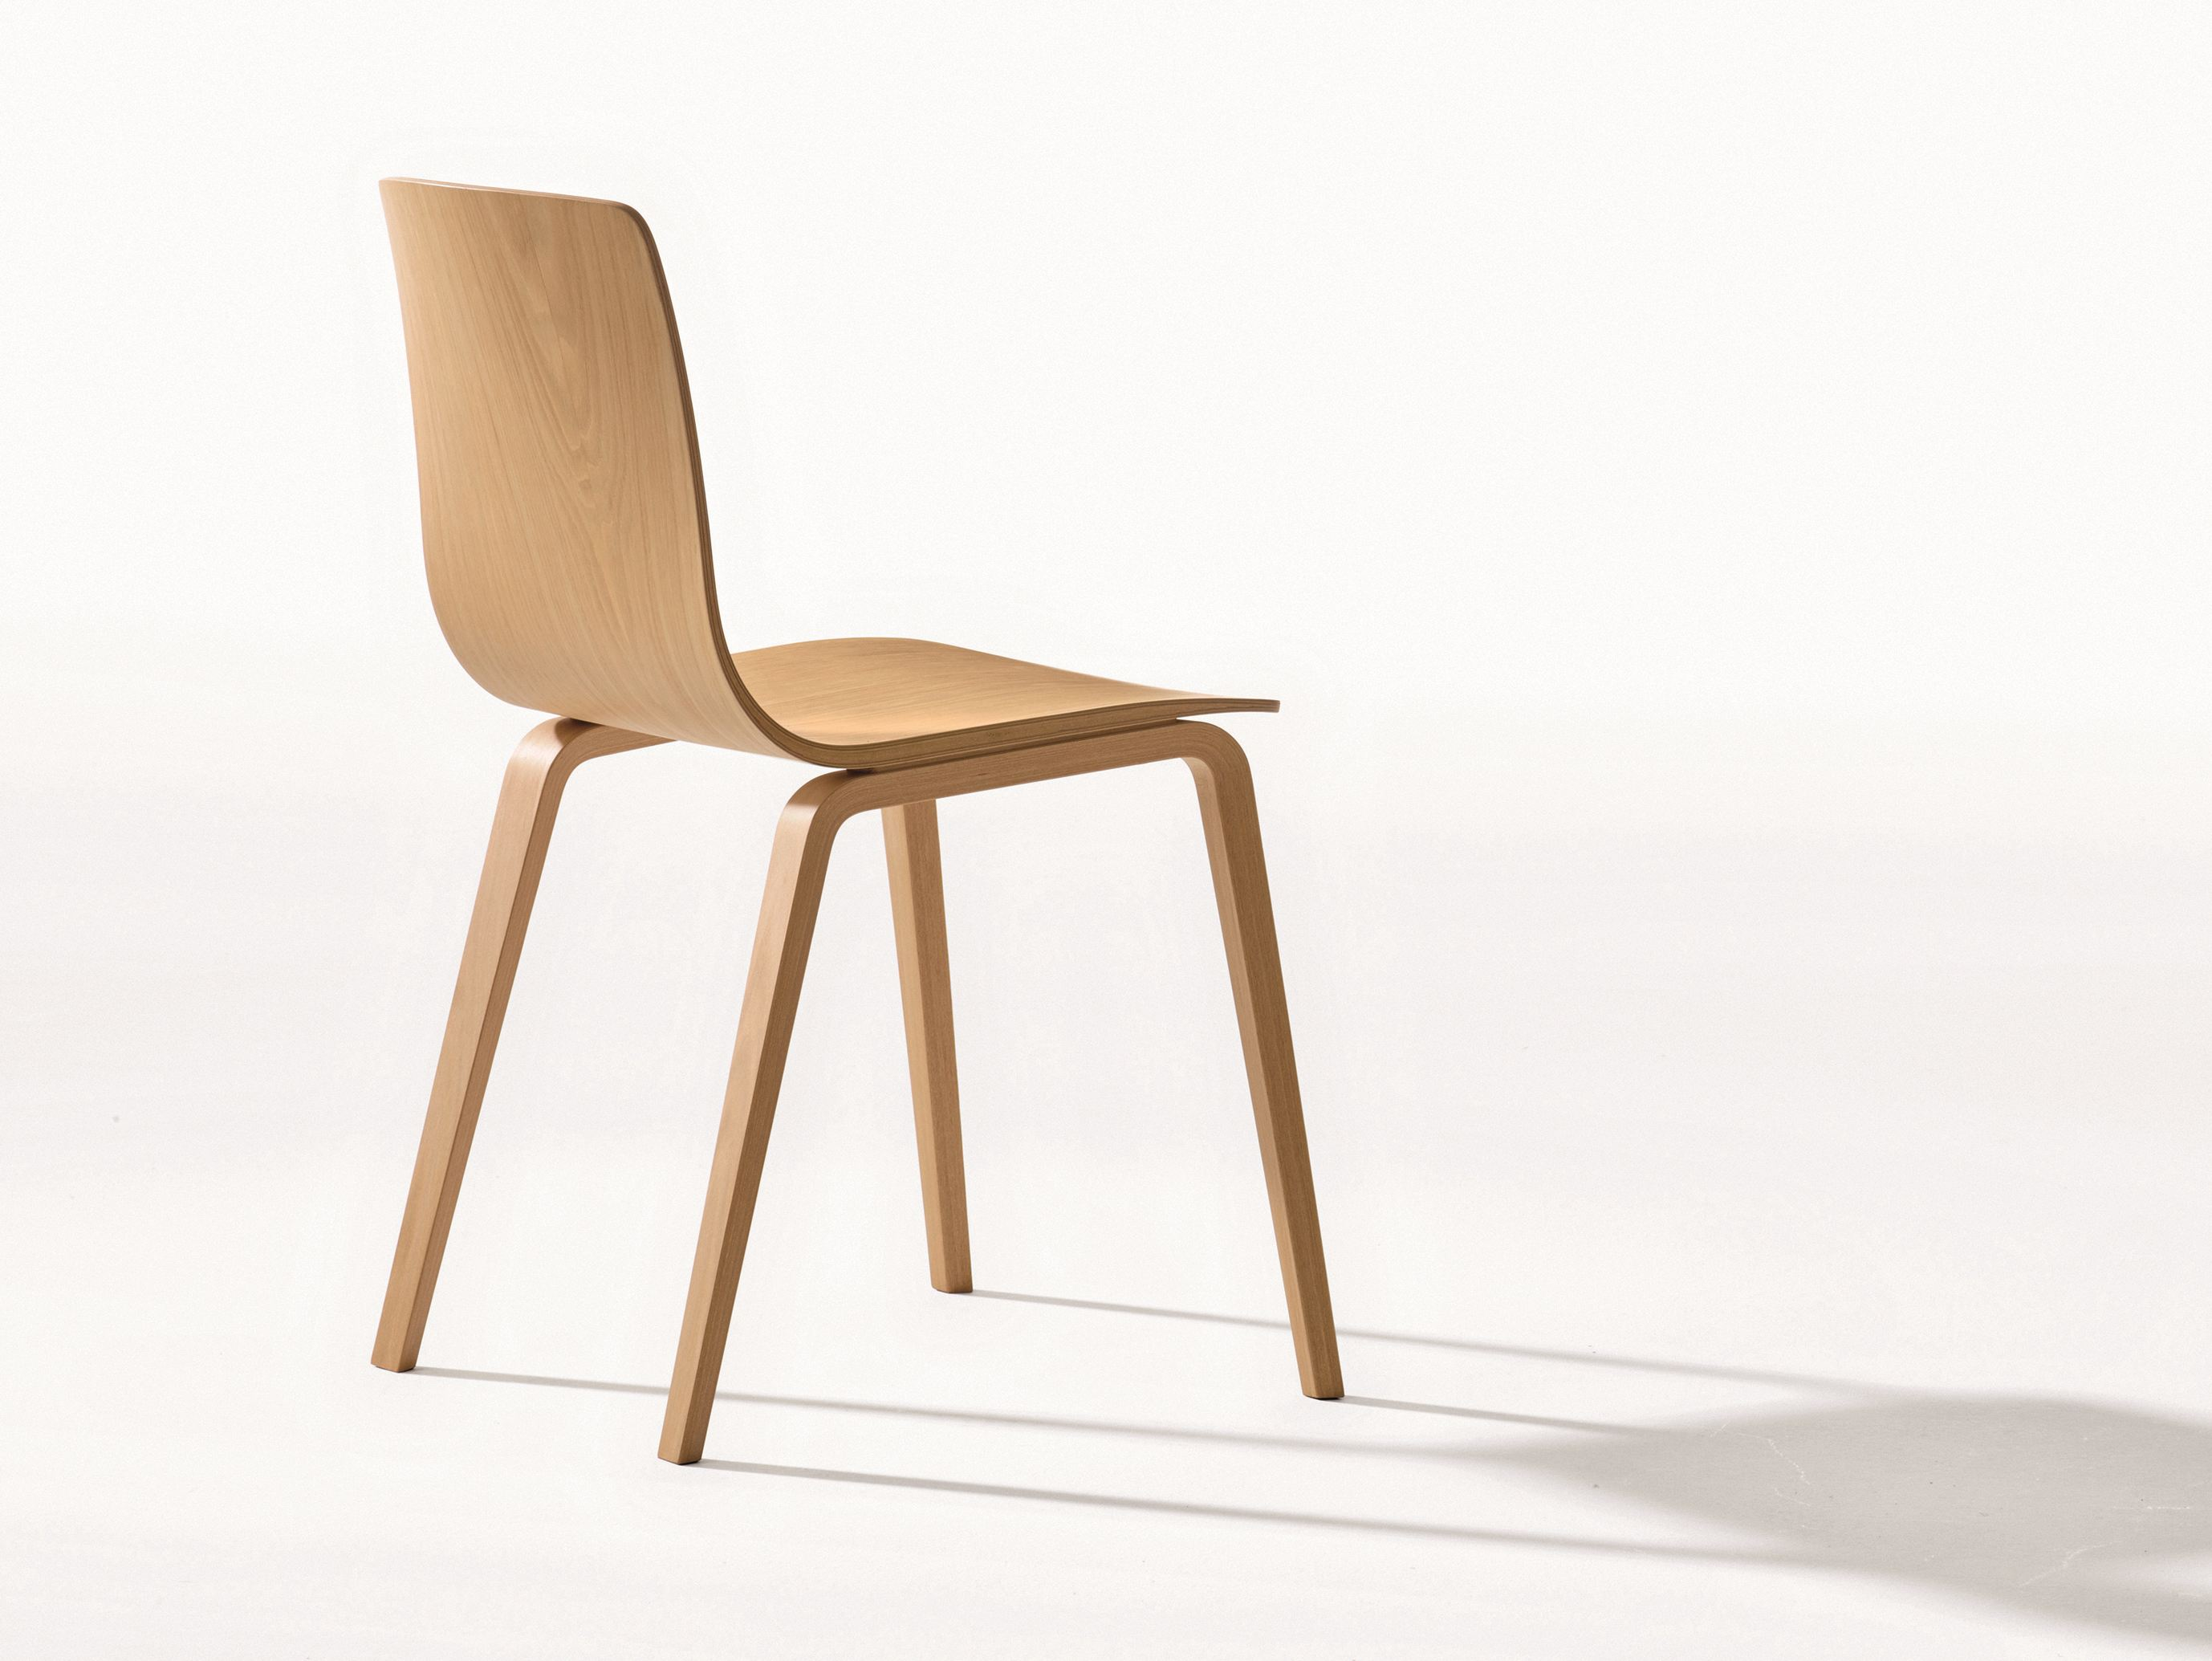 Stackable wooden chair aava collection by arper design antti kotilainen - Vieille chaise en bois ...